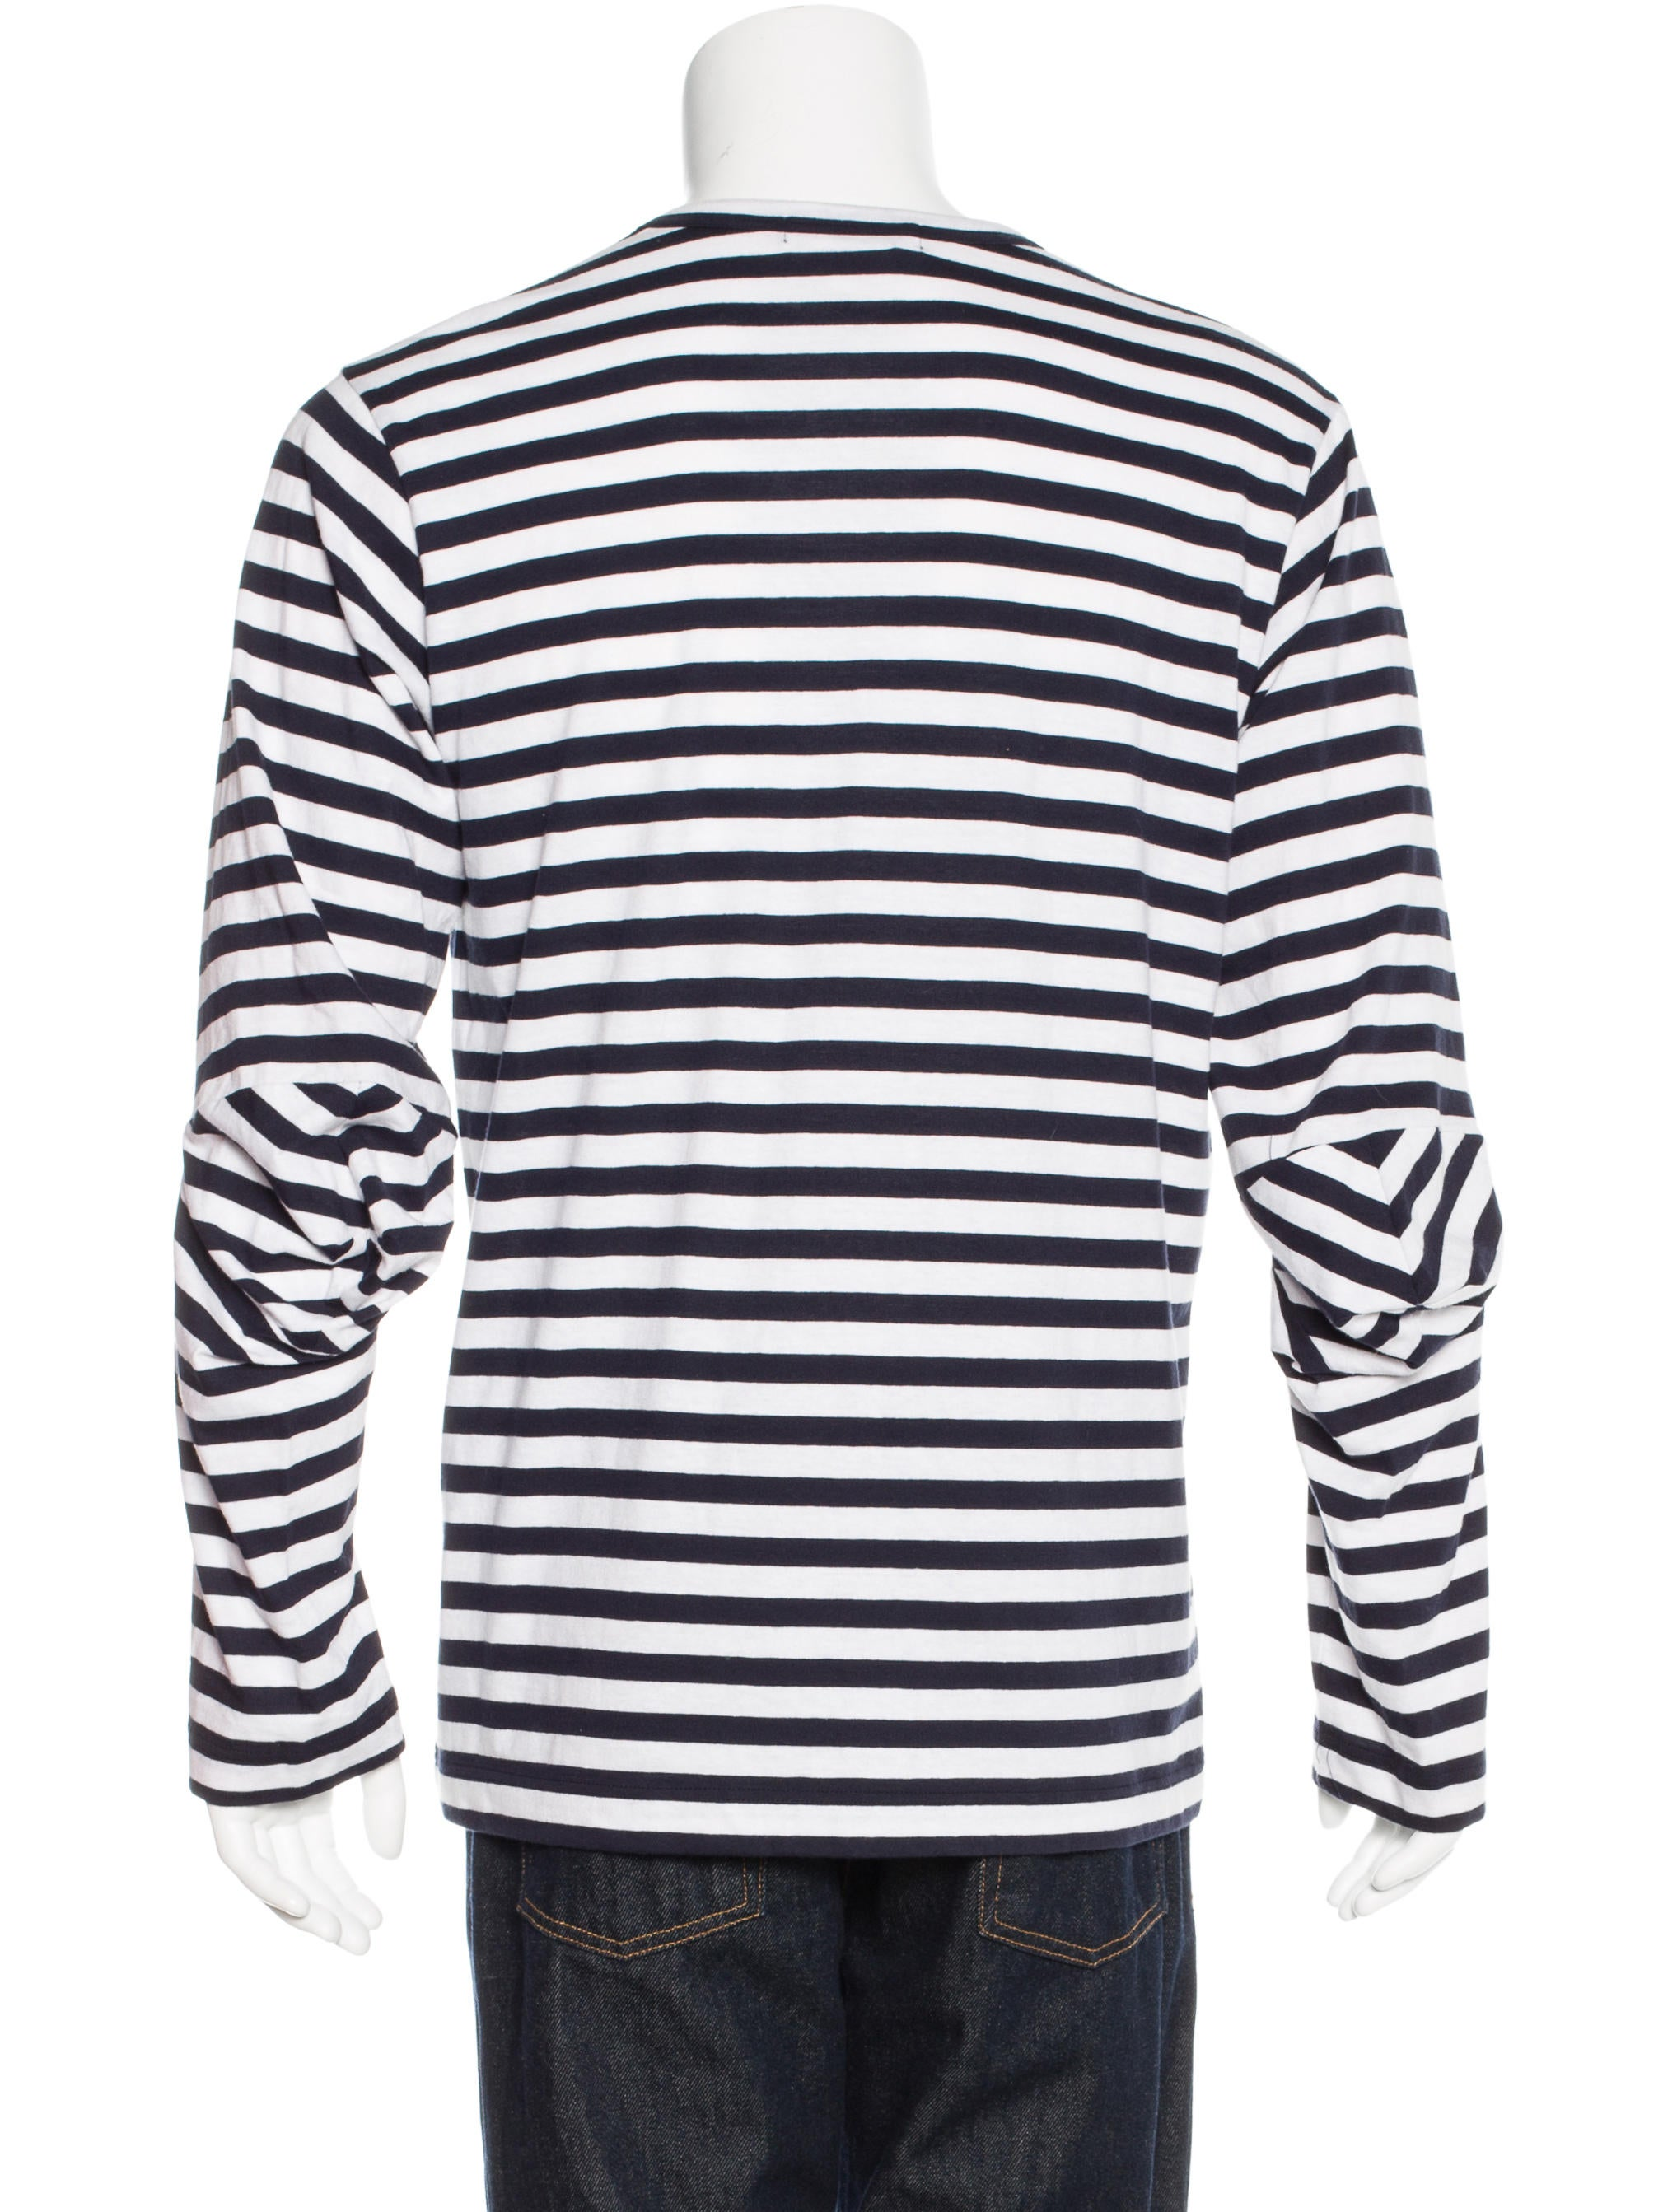 Comme des gar ons striped long sleeve t shirt clothing Striped long sleeve t shirt